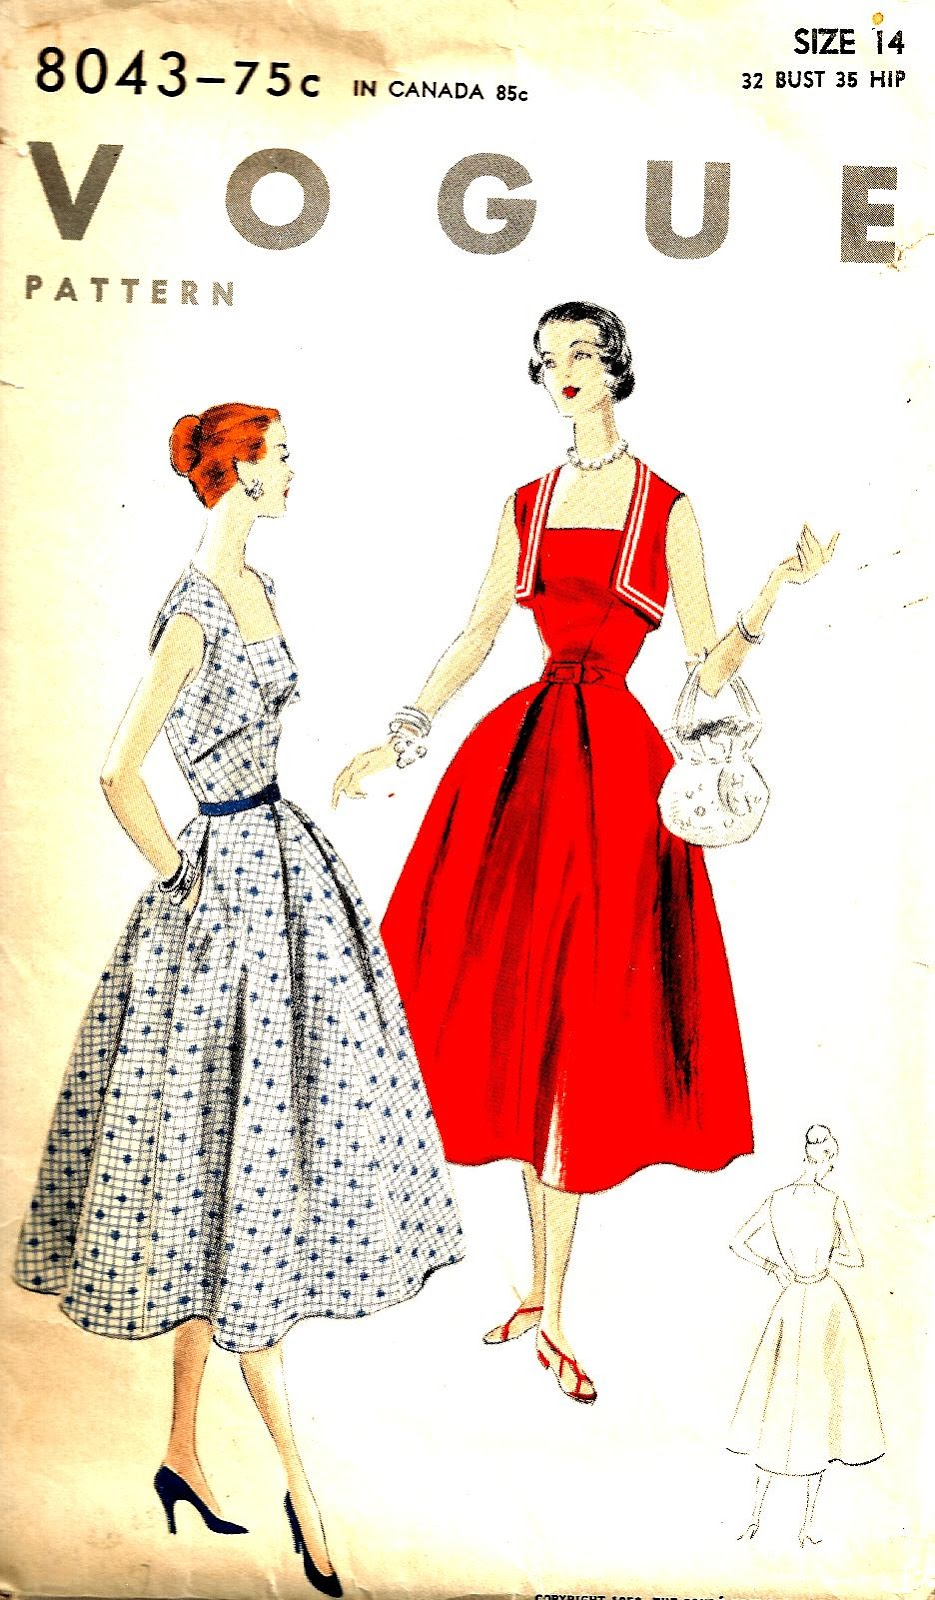 Vintage Bridal Patterns, Old Dress Patterns for Sale, Vintage Wedding Dress Patterns 1950's, Vintage 1960s Dress Patterns, Bridal Patterns 2015, Bridesmaid Dress Patterns for Sewing, Vogue Patterns Dresses Vintage